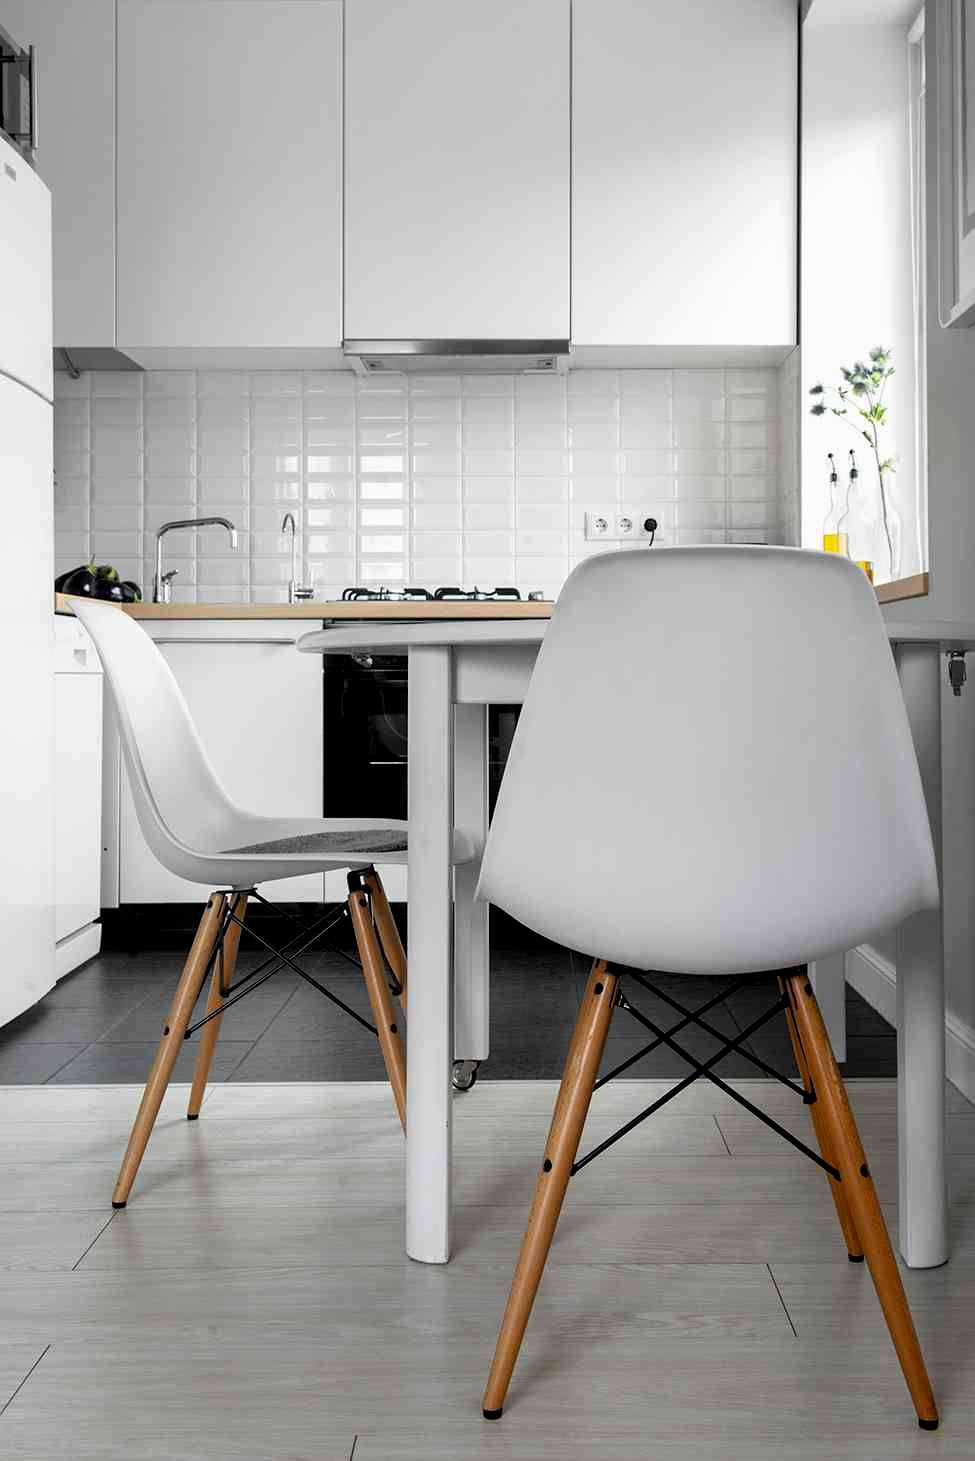 kitchen-chairs-ikea-photo-11